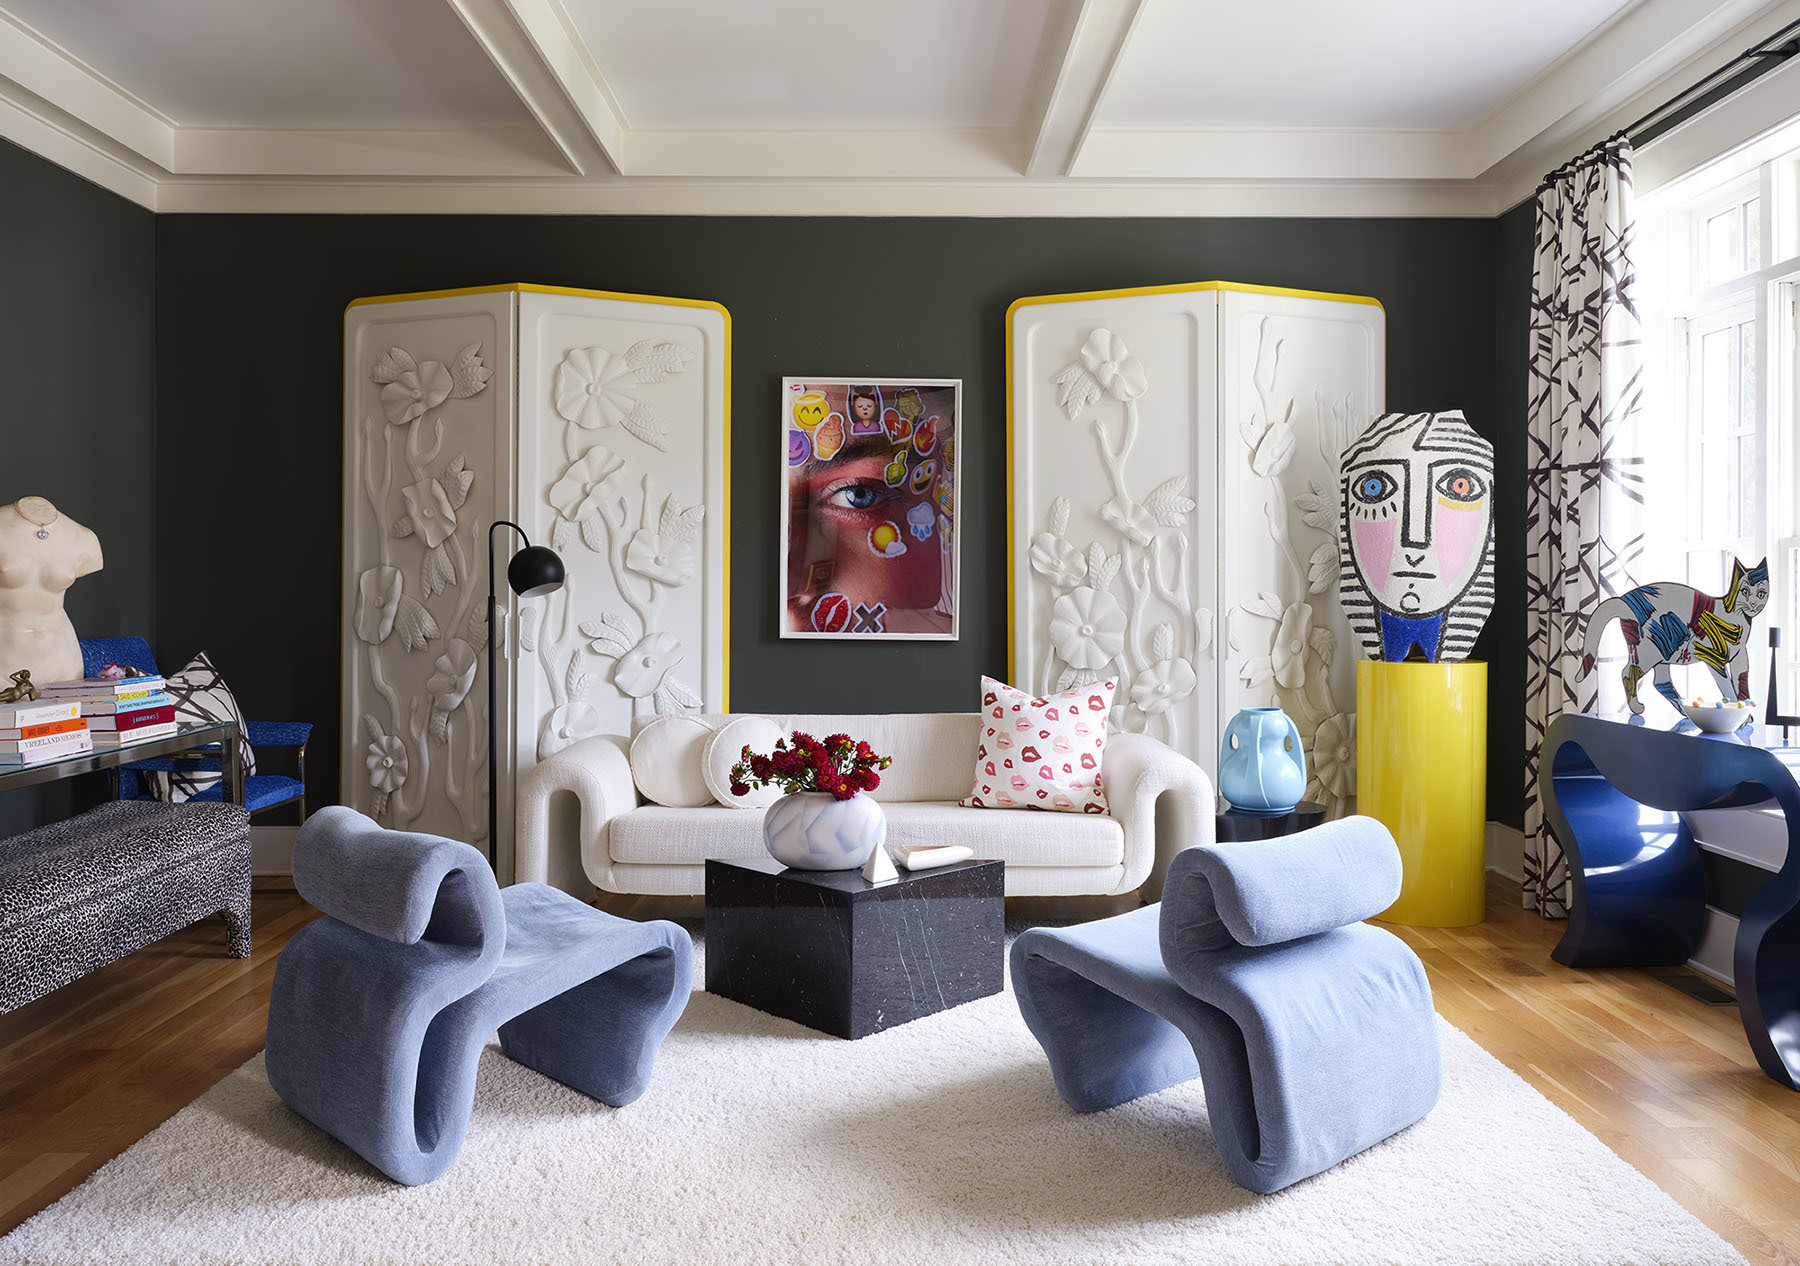 Angela Chrusciaki Blehm really indulged the senses in her bright and vivid living room. Sherwin-Williams Paint | Steve Leonard for Brayton International Vintage Sofa | Angela Chrusciaki Blehm Custom Pillow | Mimosa Lane Artwork | Vintage Accent Chairs | Gillian Bryce Screen | Gainsville Flooring Custom Rug | Gillian Bryce Artwork.